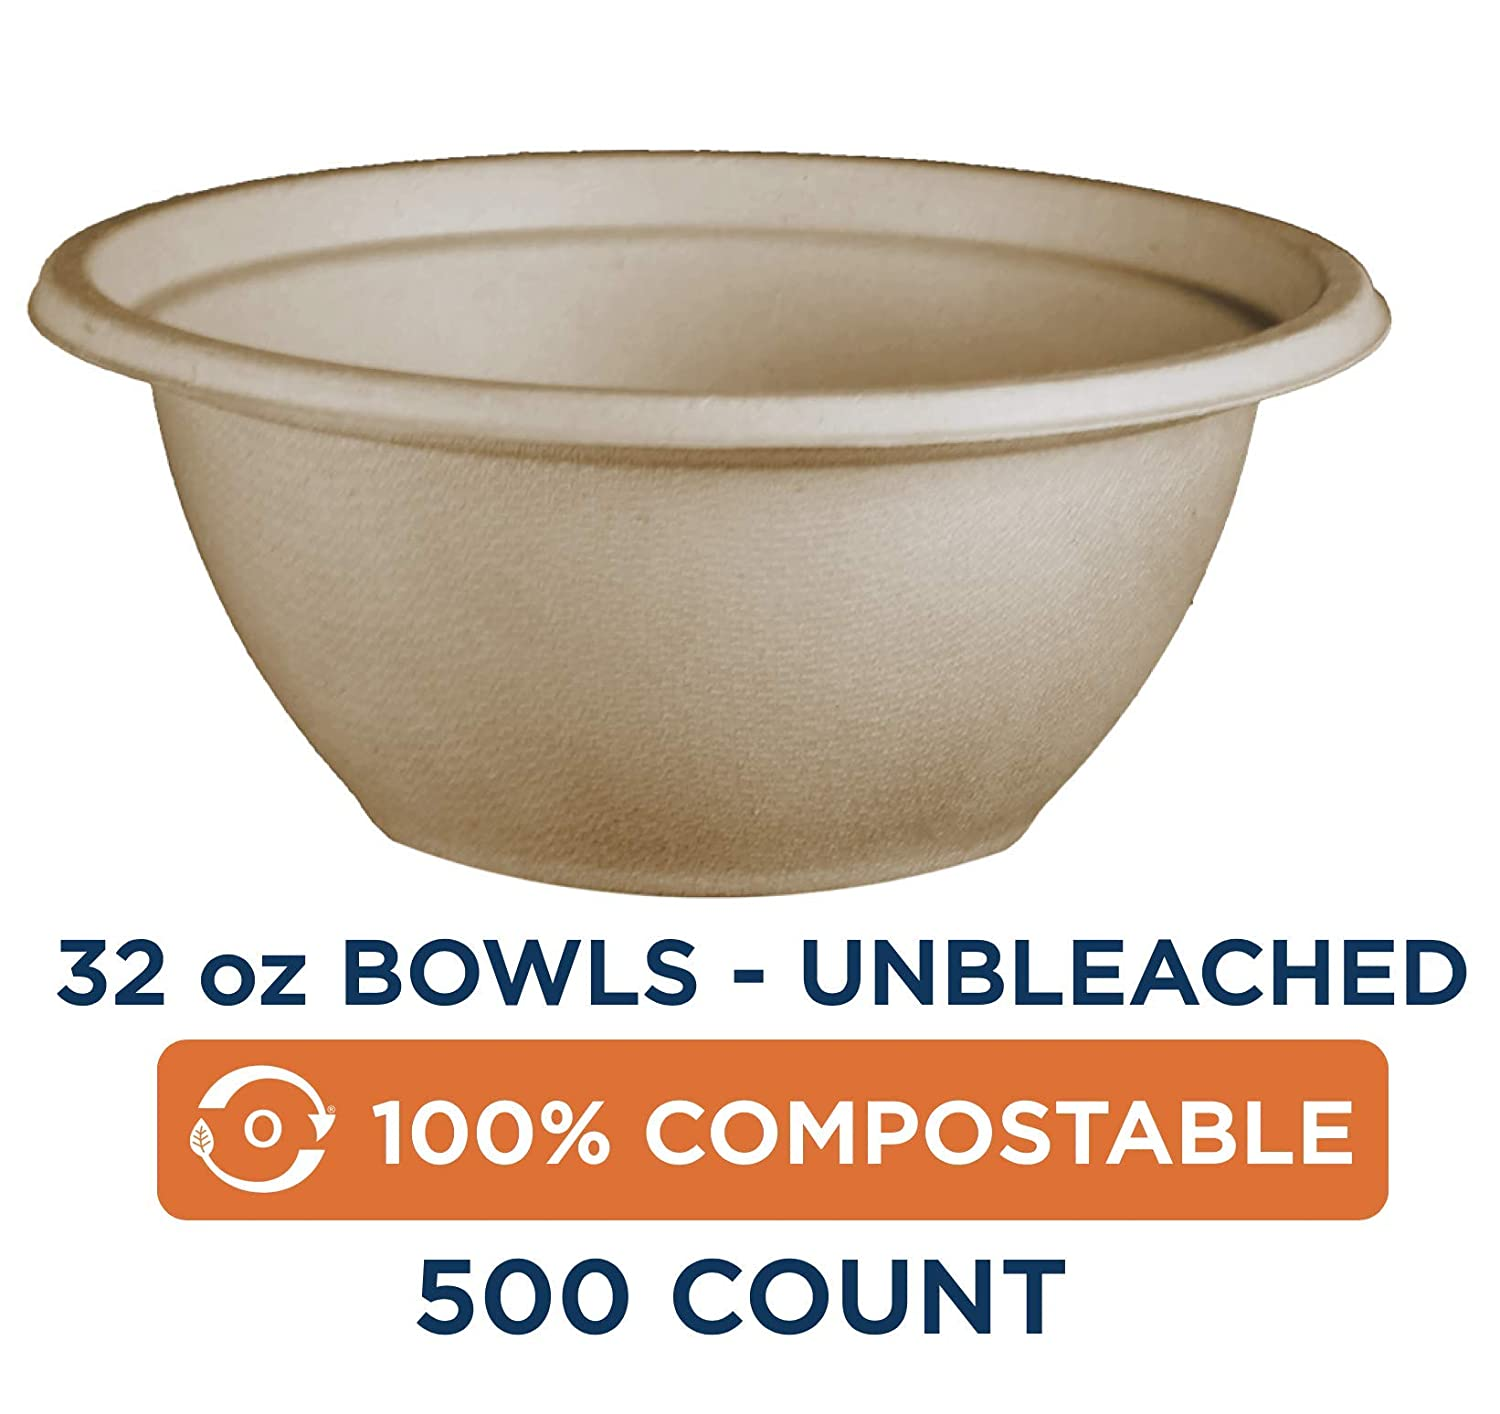 100% Compostable Bowls by World Centric, Made from Unbleached Plant Fiber, Soup Bowls, 32 oz (Pack of 500) 71H8KMGIdbL._SL1500_